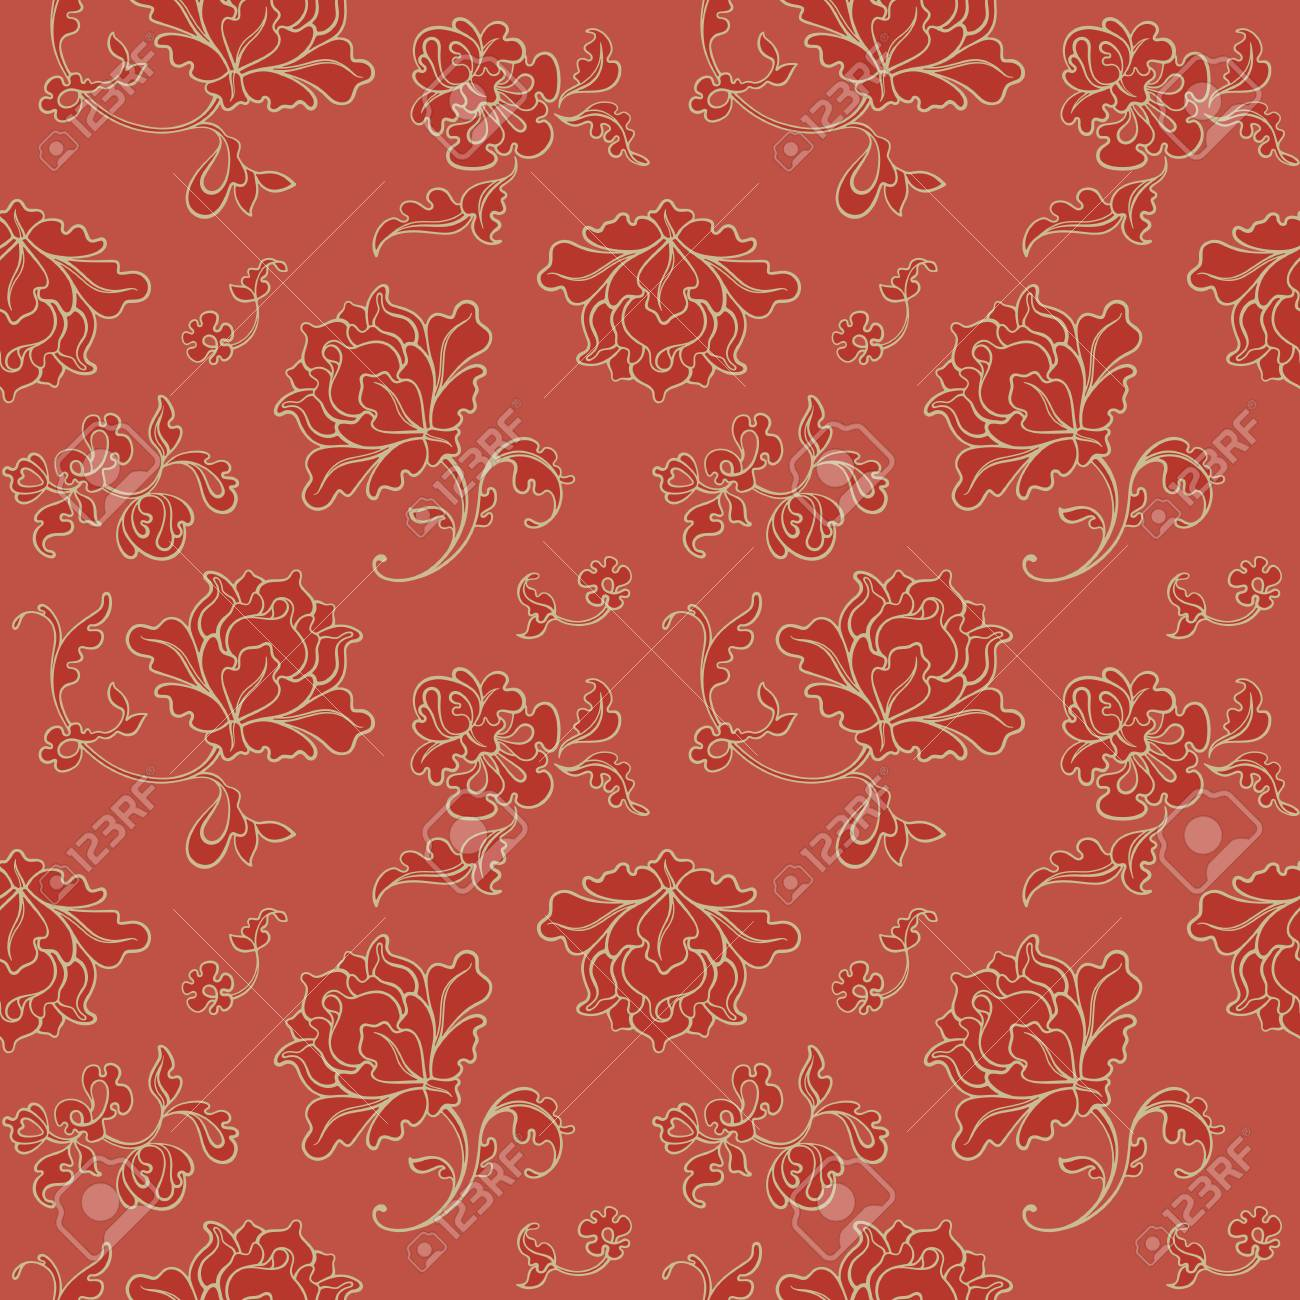 Seamless pattern. Decorative Red Background. Vector illustration. Floral background for cards, invitations, packing, textiles. - 118096363